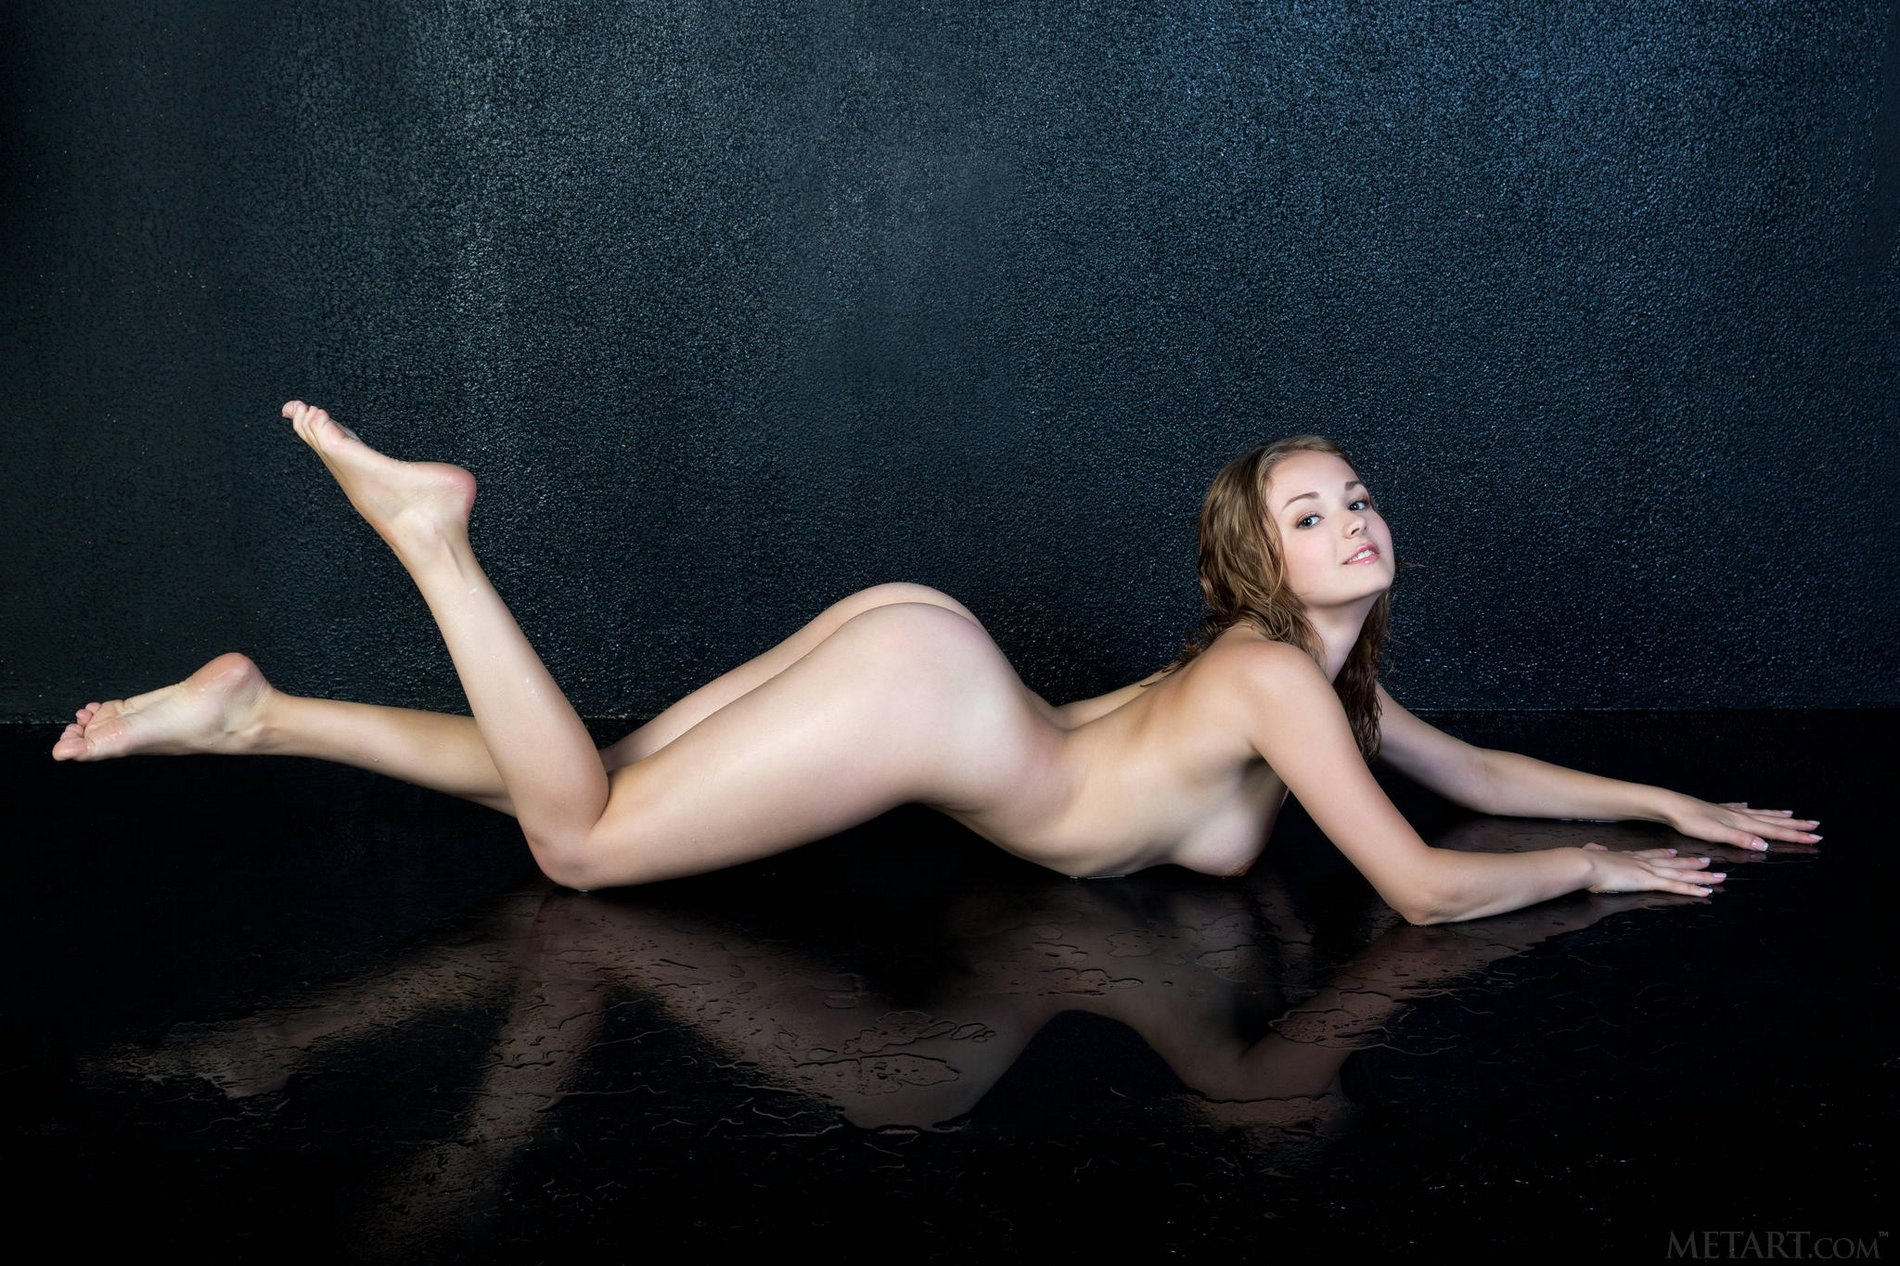 Topnotch Naked Girl With A Trimmed Pussy Poses